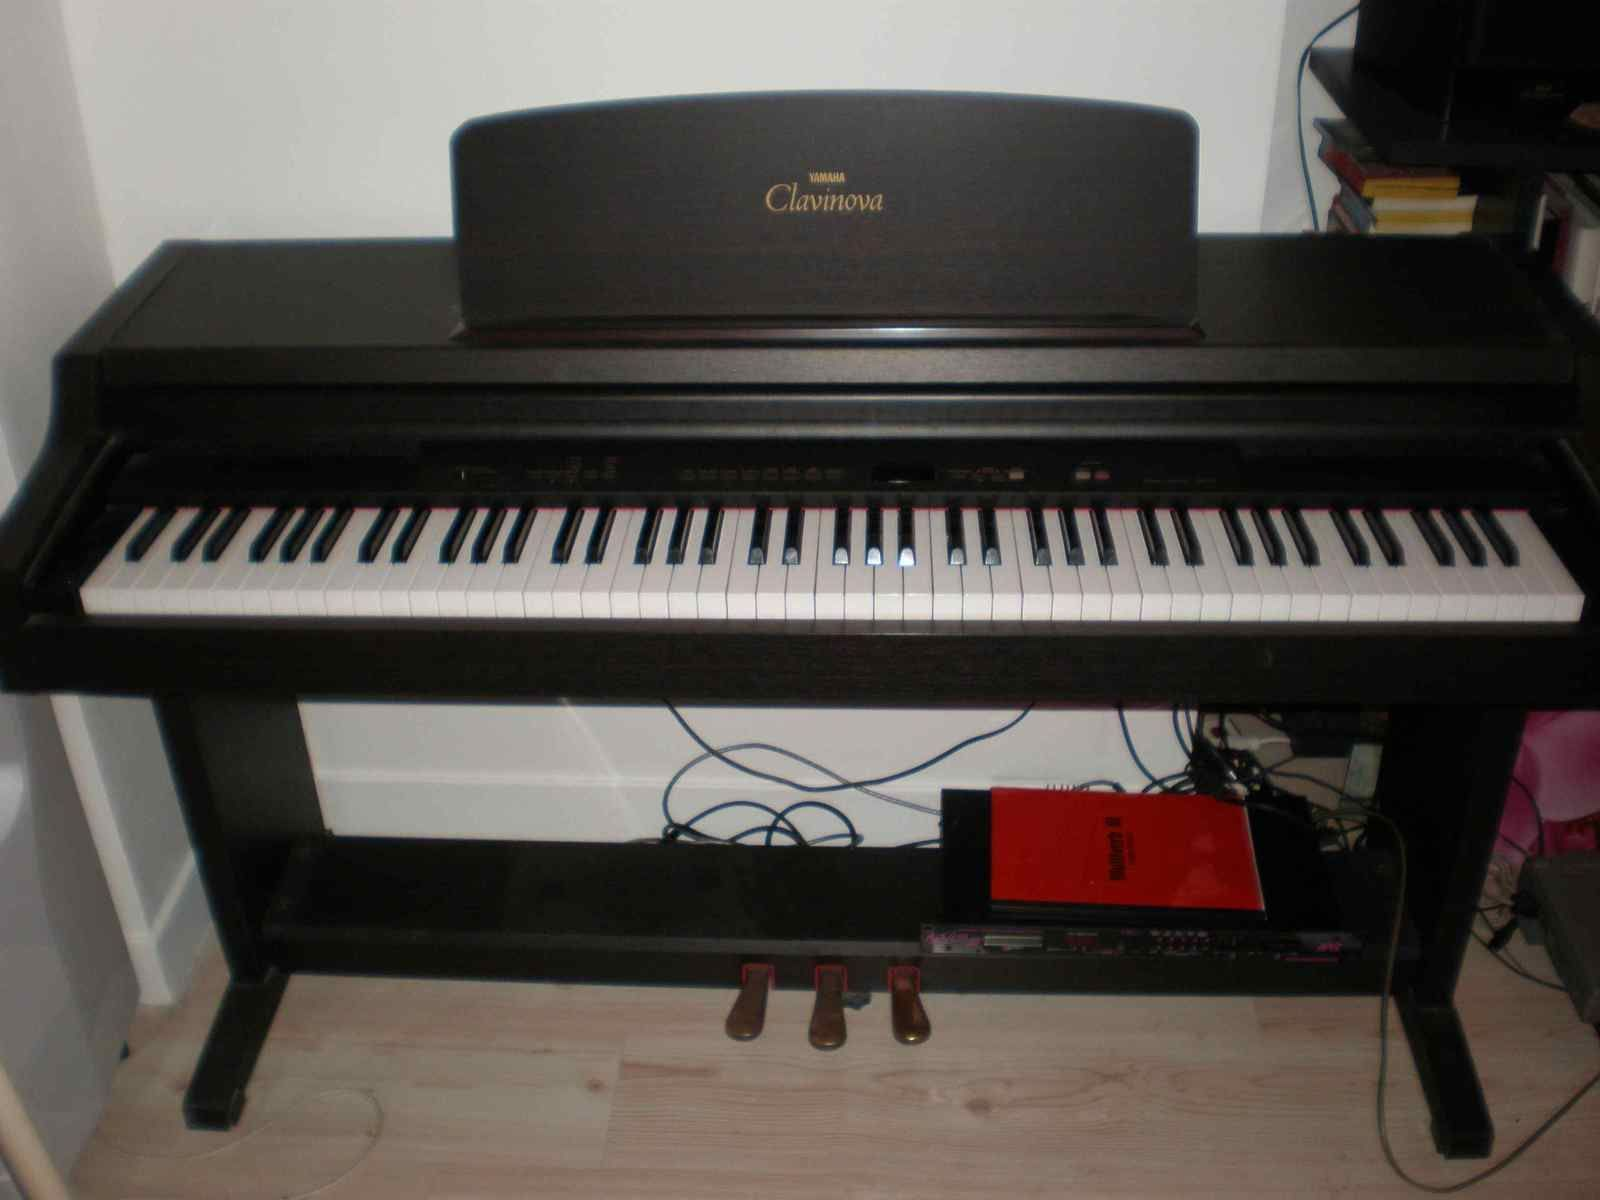 Yamaha clp 411 image 217417 audiofanzine for Yamaha clavinova price list